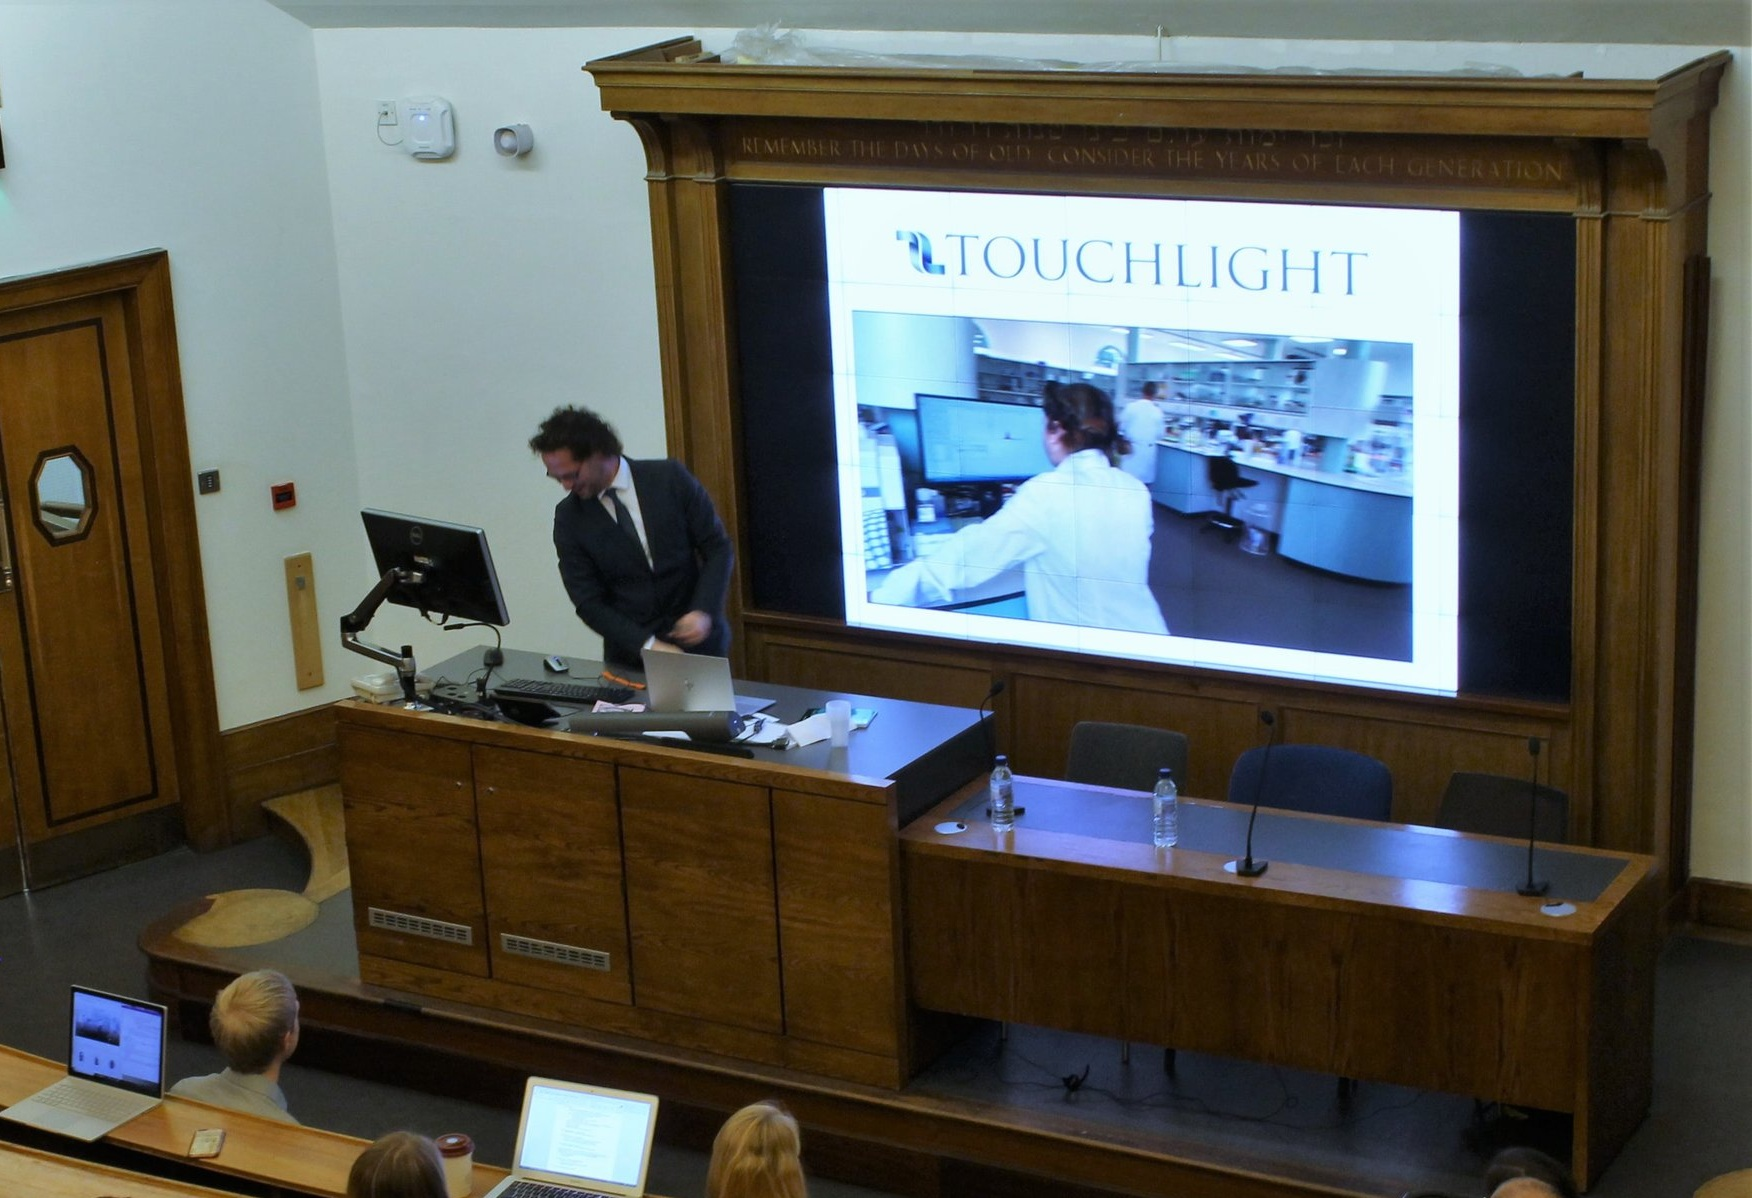 Dr Paul Rothwell- Touchlight Genetics